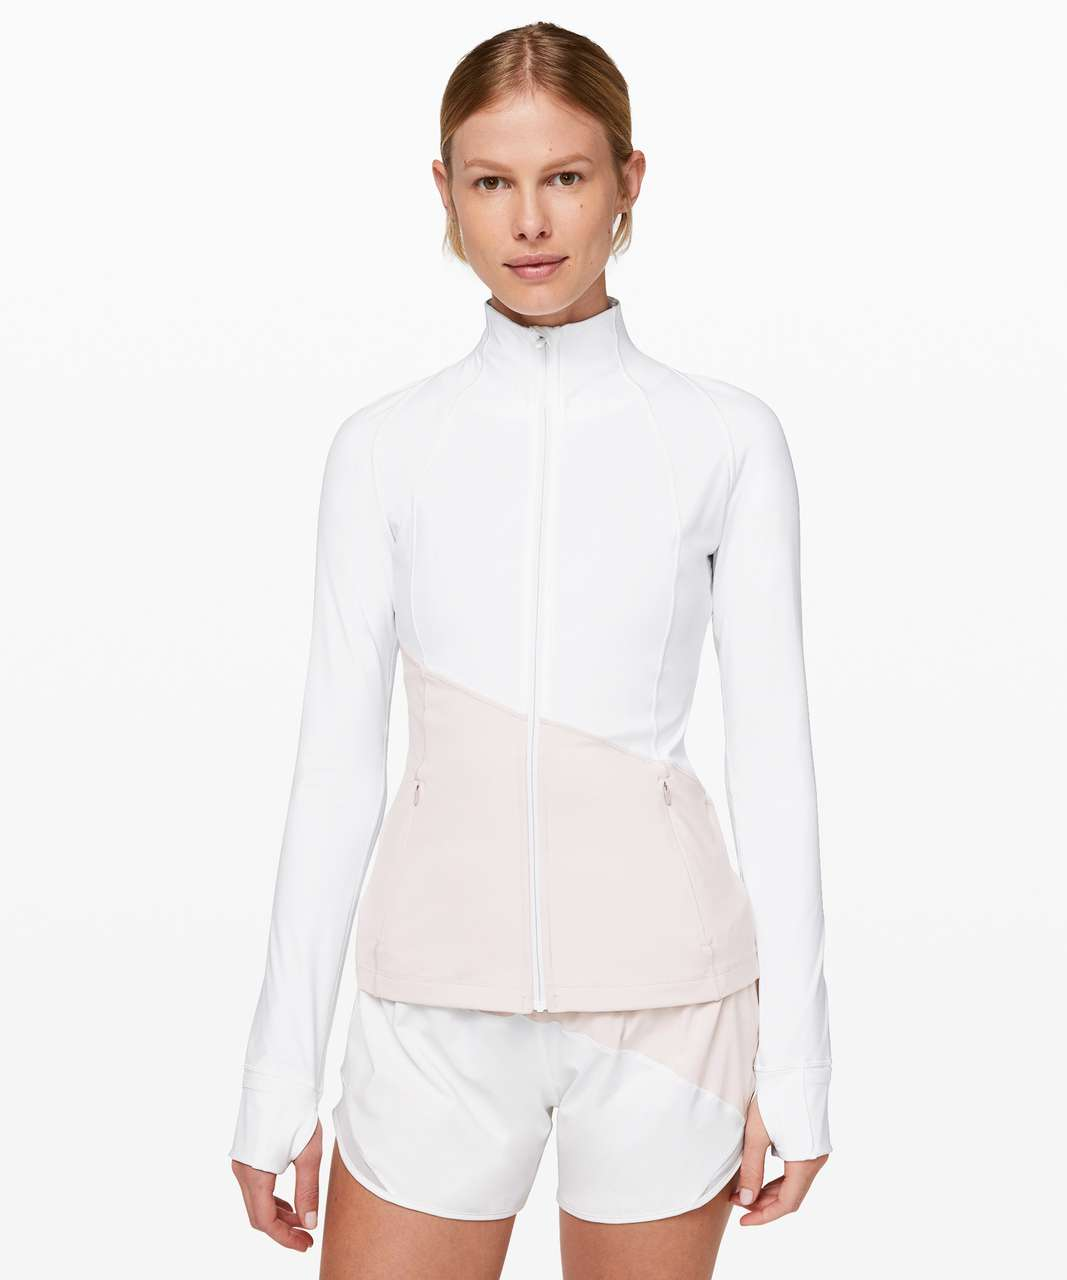 Lululemon Define Jacket *Asym - White / Light Chrome